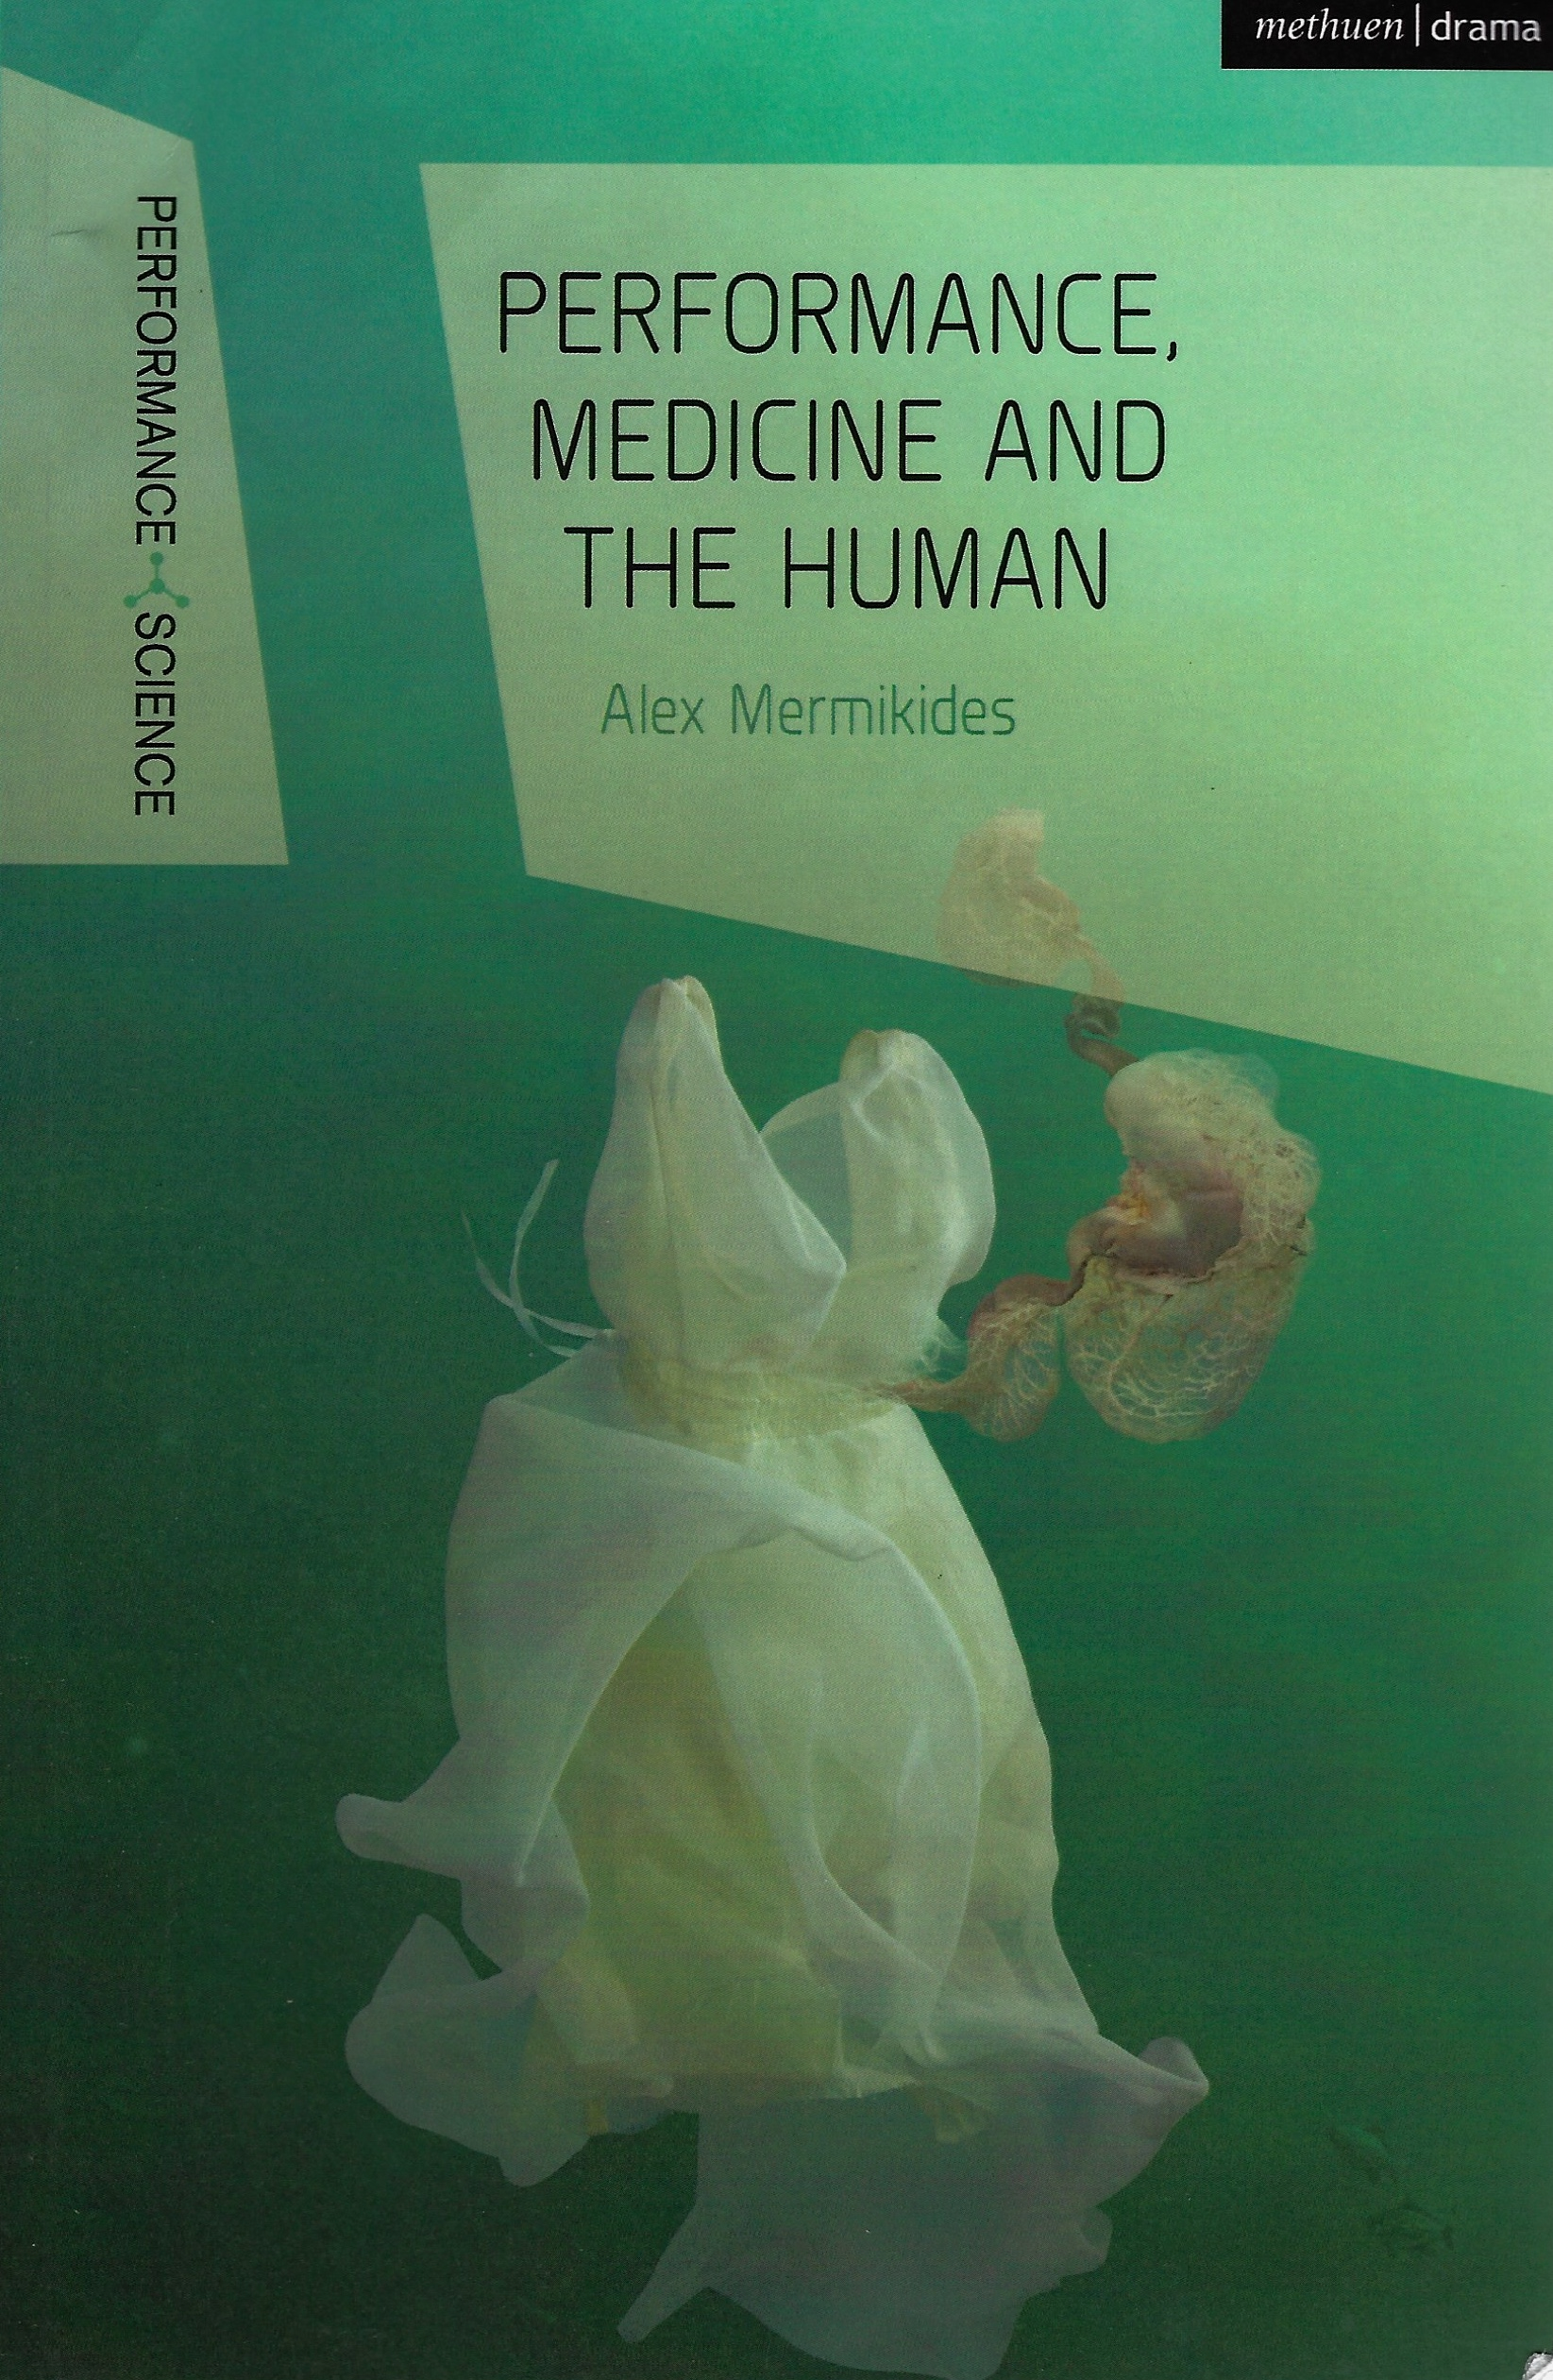 Performance Medicine and the Human, Alex Mermikides